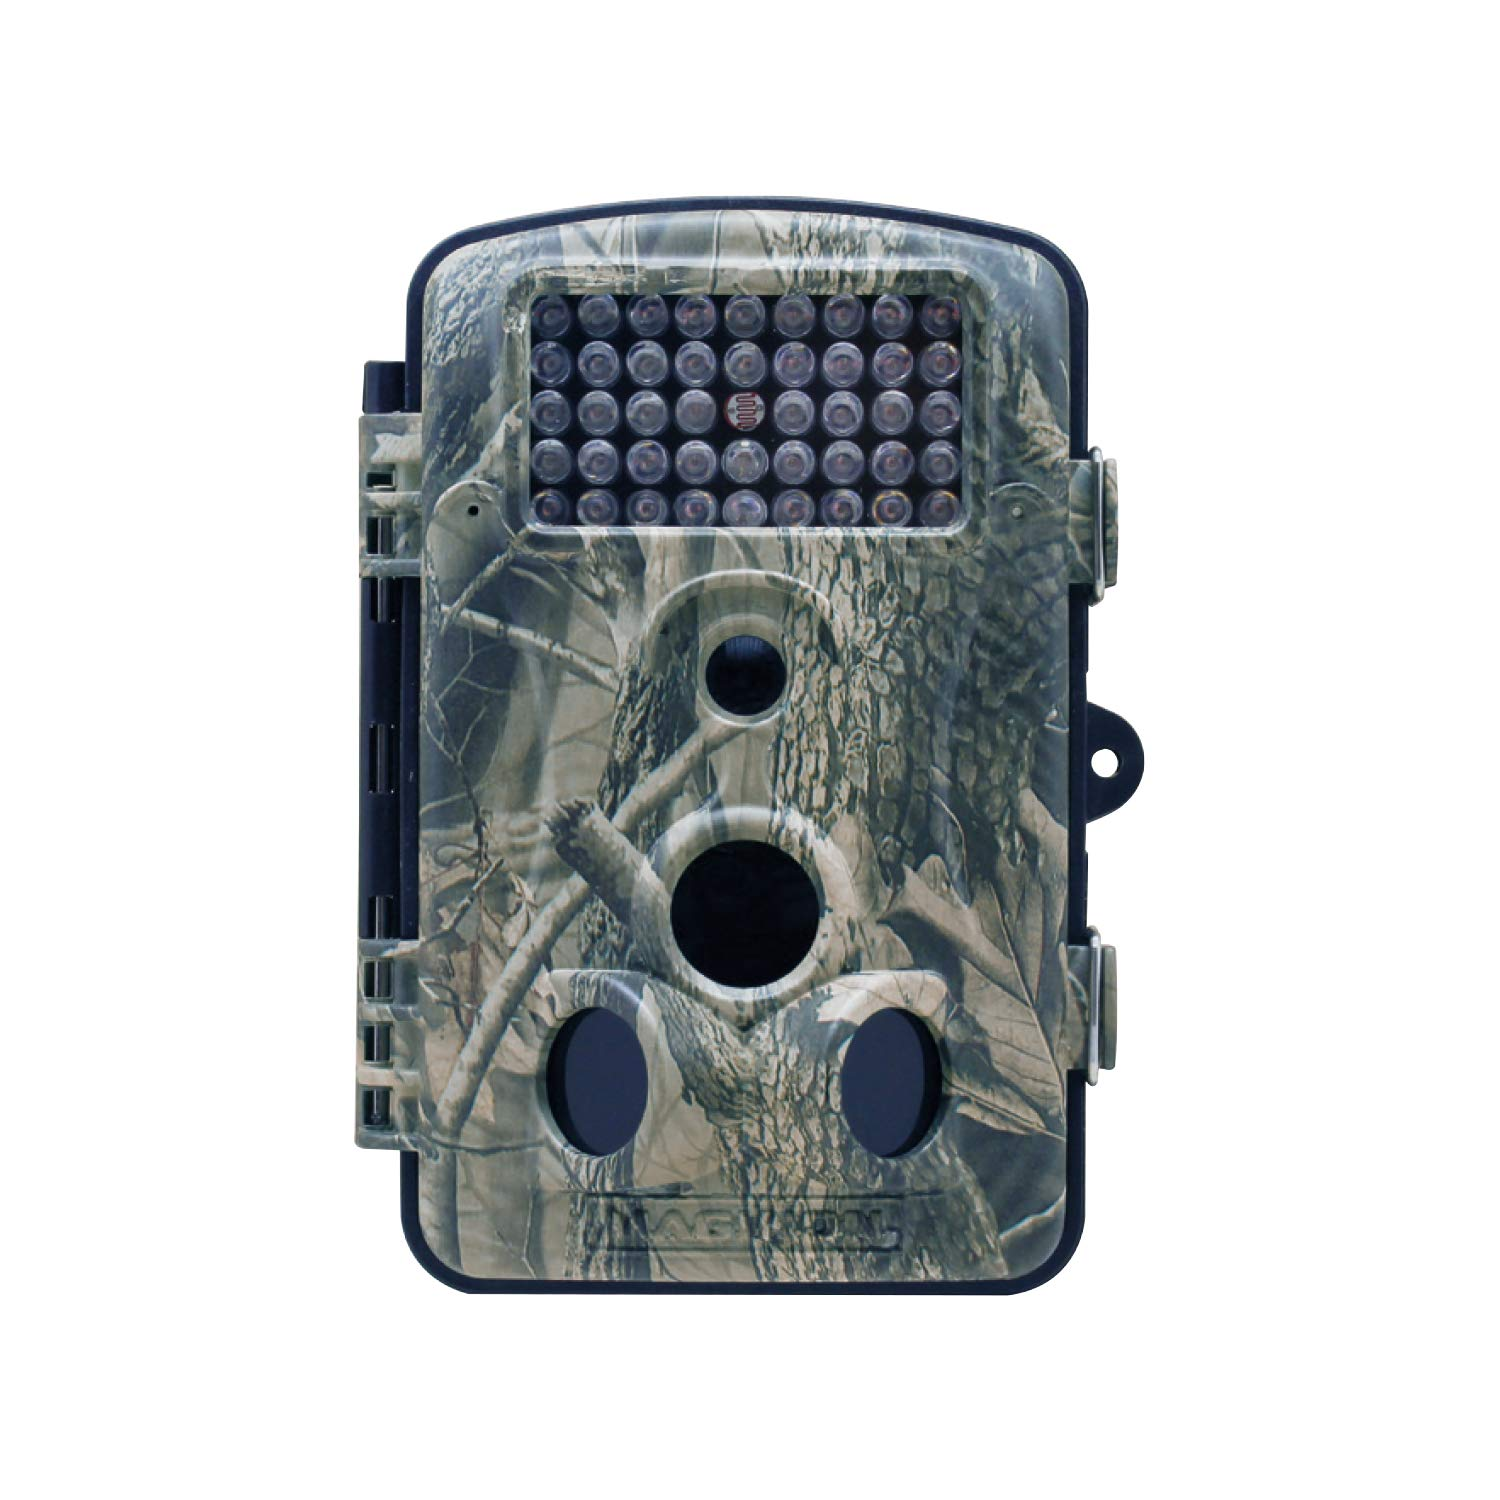 Maginon Trail Camera 12MP, 1080P, 2.4 TFT Display Game Hunting Camera with 44 IR LEDs for Wildlife Animal Scouting and Digital Surveillance Night Vision up to 65ft 20m IP54 Waterproof